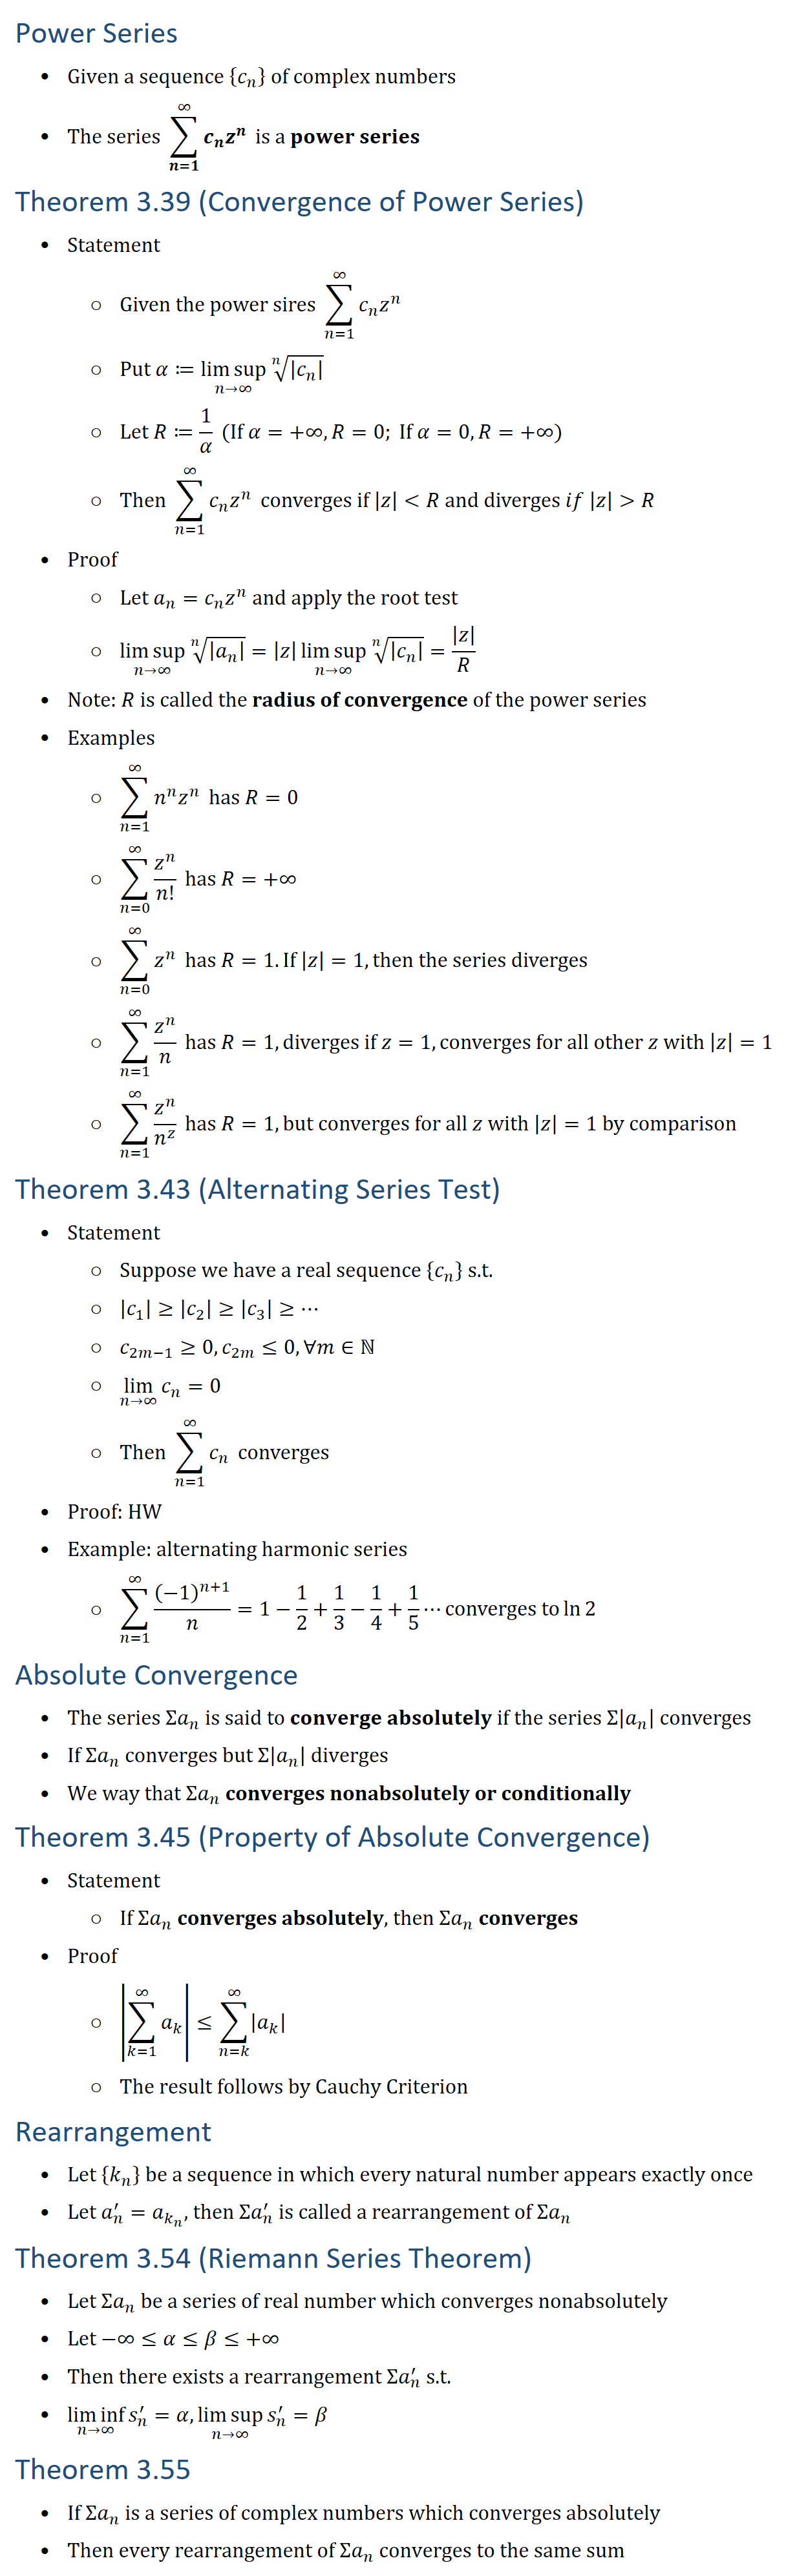 Power Series • Given a sequence {c_n } of complex numbers • The series ∑_(n=1)^∞▒〖c_n z^n 〗 is a power series Theorem 3.39 (Convergence of Power Series) • Statement ○ Given the power sires ∑_(n=1)^∞▒〖c_n z^n 〗 ○ Put α≔(limsup)_(n→∞)√(n&|c_n | ) ○ Let R≔1/α (If α=+∞,R=0; If α=0,R=+∞) ○ Then ∑_(n=1)^∞▒〖c_n z^n 〗 converges if |z| R and diverges if |z| R • Proof ○ Let a_n=c_n z^n and apply the root test ○ (limsup)_(n→∞)√(n&|a_n | )=|z| (limsup)_(n→∞)√(n&|c_n | )=|z|/R • Note: R is called the radius of convergence of the power series • Examples ○ ∑_(n=1)^∞▒〖n^n z^n 〗 has R=0 ○ ∑_(n=0)^∞▒z^n/n! has R=+∞ ○ ∑_(n=0)^∞▒z^n has R=1. If |z|=1, then the series diverges ○ ∑_(n=1)^∞▒z^n/n has R=1,diverges if z=1, converges for all other z with |z|=1 ○ ∑_(n=1)^∞▒z^n/n^z has R=1, but converges for all z with |z|=1 by comparison Theorem 3.43 (Alternating Series Test) • Statement ○ Suppose we have a real sequence {c_n } s.t. ○ |c_1 |≥|c_2 |≥|c_3 |≥… ○ c_(2m−1)≥0, c_2m≤0, ∀m∈N ○ lim_(n→∞)〖c_n 〗=0 ○ Then ∑_(n=1)^∞▒c_n converges • Proof: HW • Example: alternating harmonic series ○ ∑_(n=1)^∞▒(−1)^(n+1)/n=1−1/2+1/3−1/4+1/5⋯converges to ln2 Absolute Convergence • The series Σa_n is said to converge absolutely if the series Σ|a_n | converges • If Σa_n converges but Σ|a_n | diverges • We way that Σa_n converges nonabsolutely or conditionally Theorem 3.45 (Property of Absolute Convergence) • Statement ○ If Σa_n converges absolutely, then Σa_n converges • Proof ○ |∑_(k=1)^∞▒a_k |≤∑_(n=k)^∞▒|a_k | ○ The result follows by Cauchy Criterion Rearrangement • Let {k_n } be a sequence in which every natural number appears exactly once • Let a_n^′=a_(k_n ), then Σa_n^′ is called a rearrangement of Σa_n Theorem 3.54 (Riemann Series Theorem) • Let Σa_n be a series of real number which converges nonabsolutely • Let −∞≤α≤β≤+∞ • Then there exists a rearrangement Σa_n^′ s.t. • (liminf)_(n→∞)〖s_n^′ 〗=α, (limsup)_(n→∞)〖s_n^′ 〗=β Theorem 3.55 • If Σa_n is a series of complex numbers which converges absolutely • 